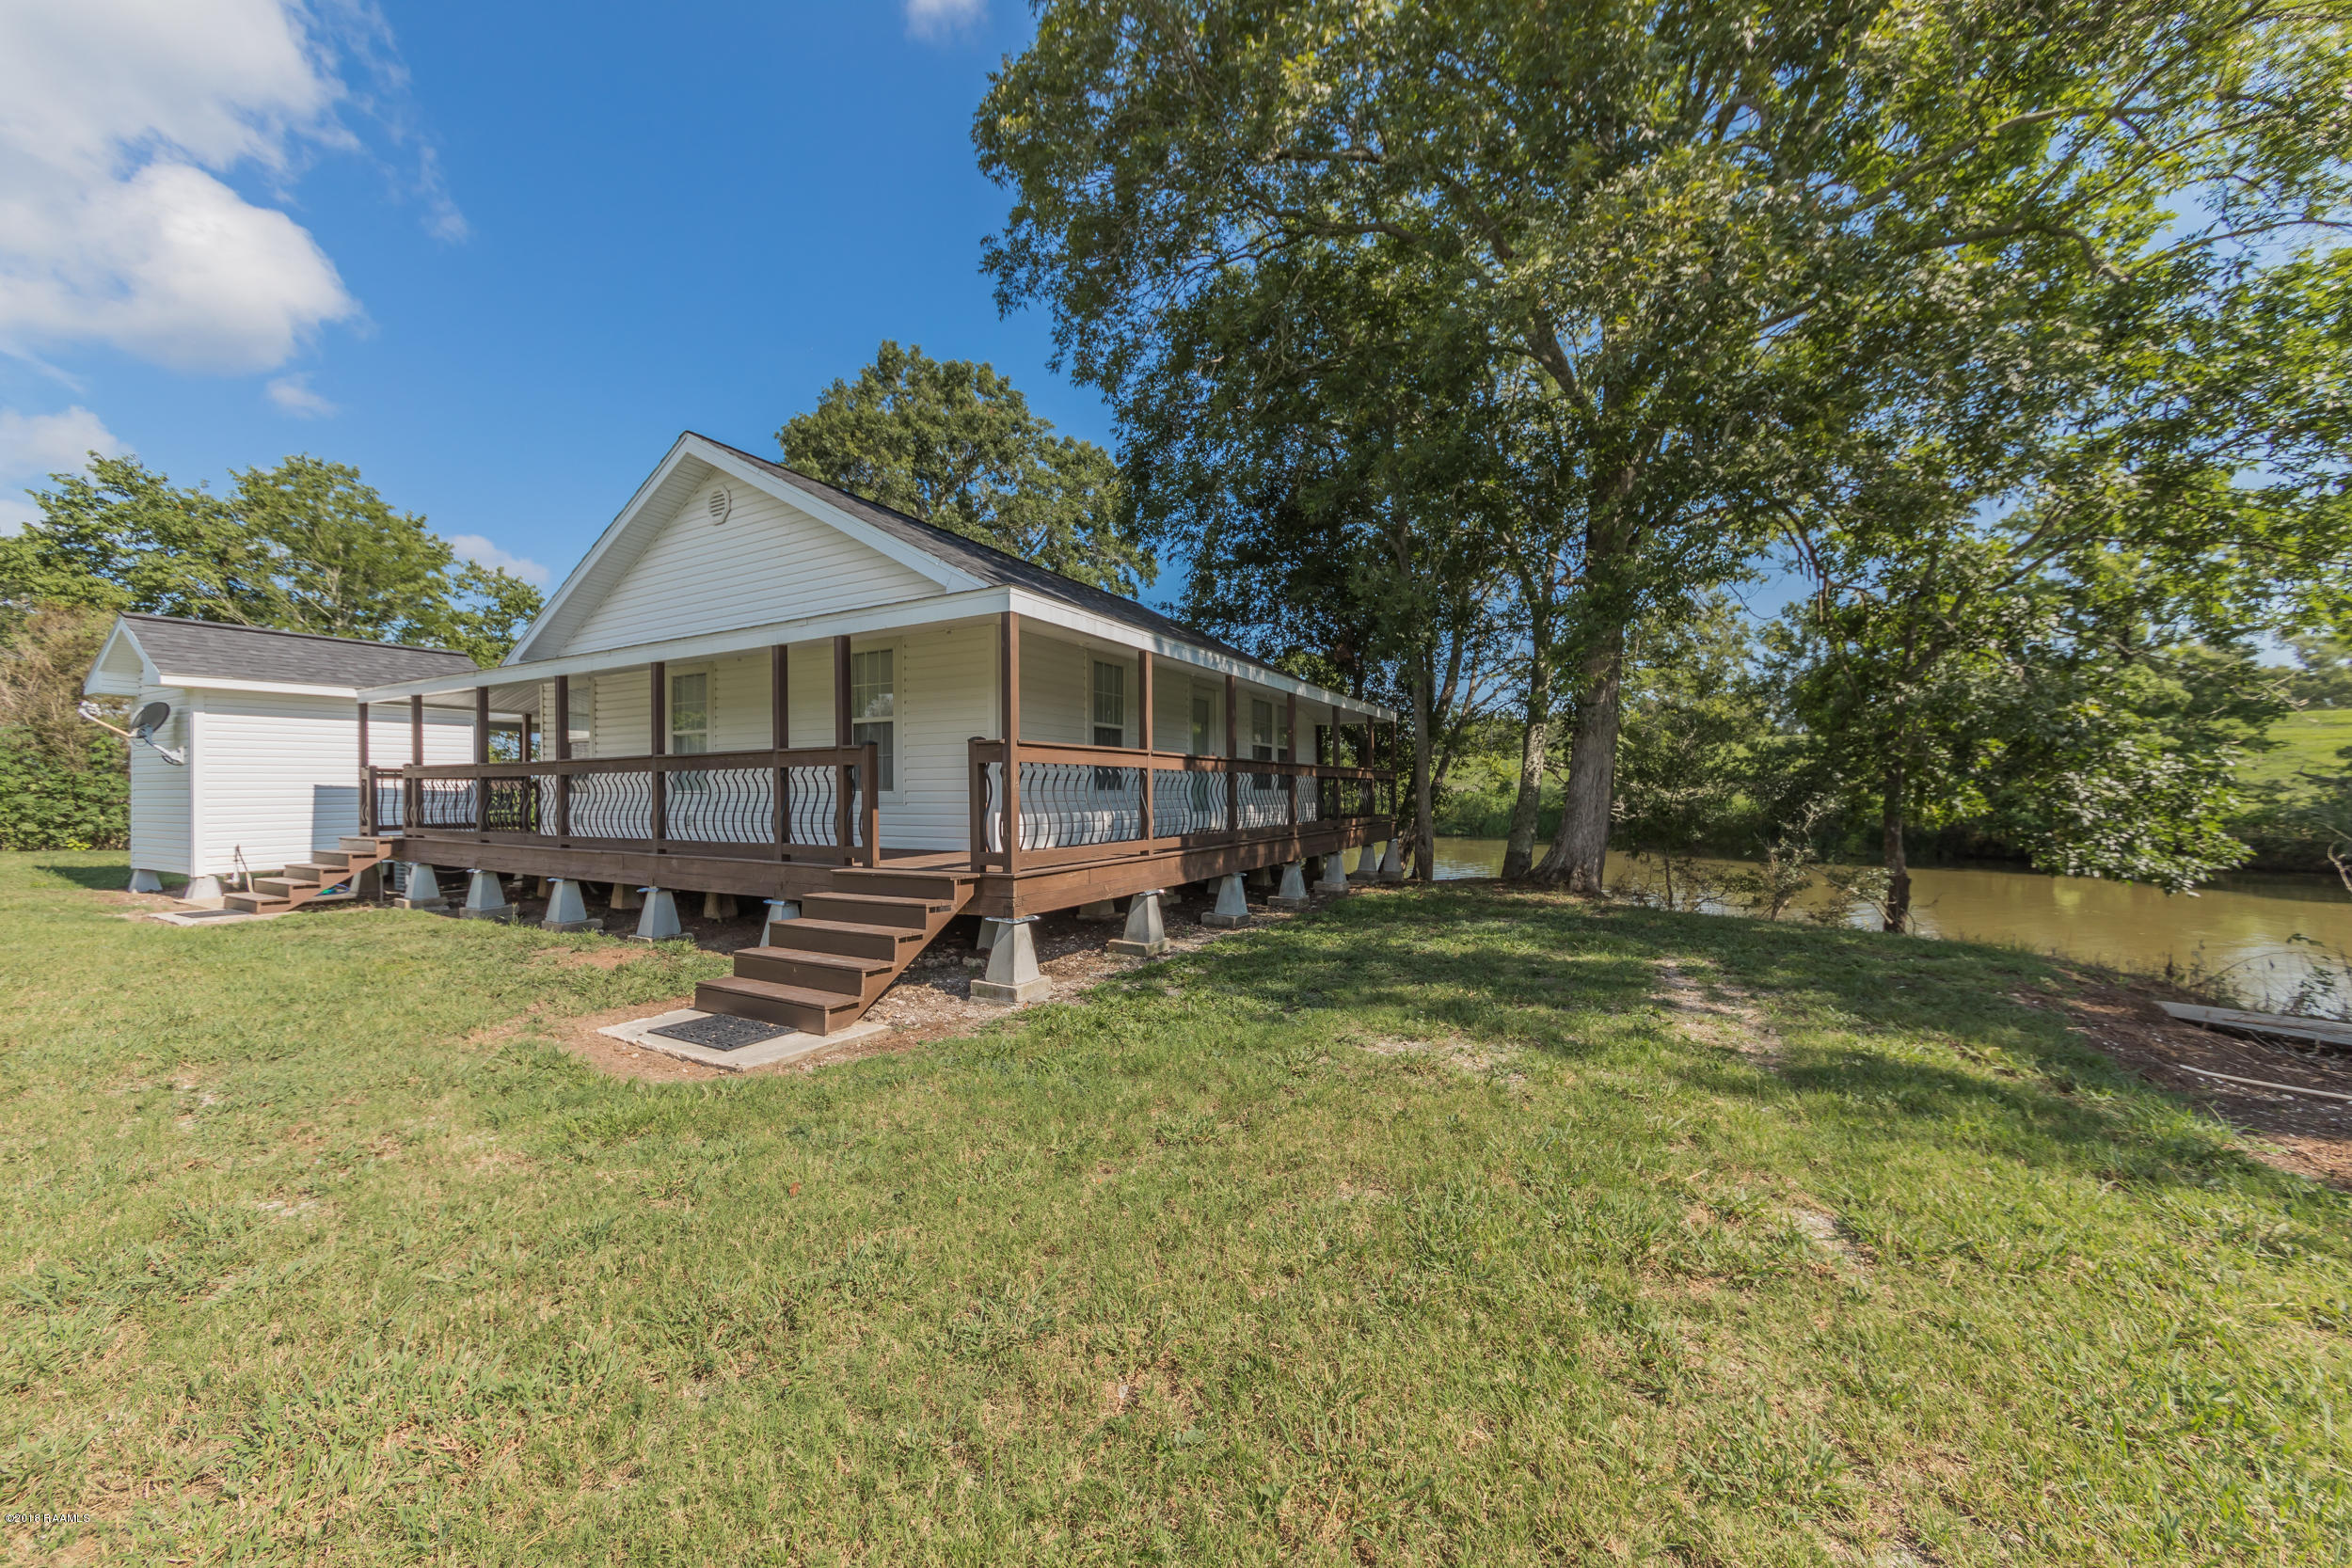 1185 Wade O Martin Road, St. Martinville, LA 70582 Photo #45